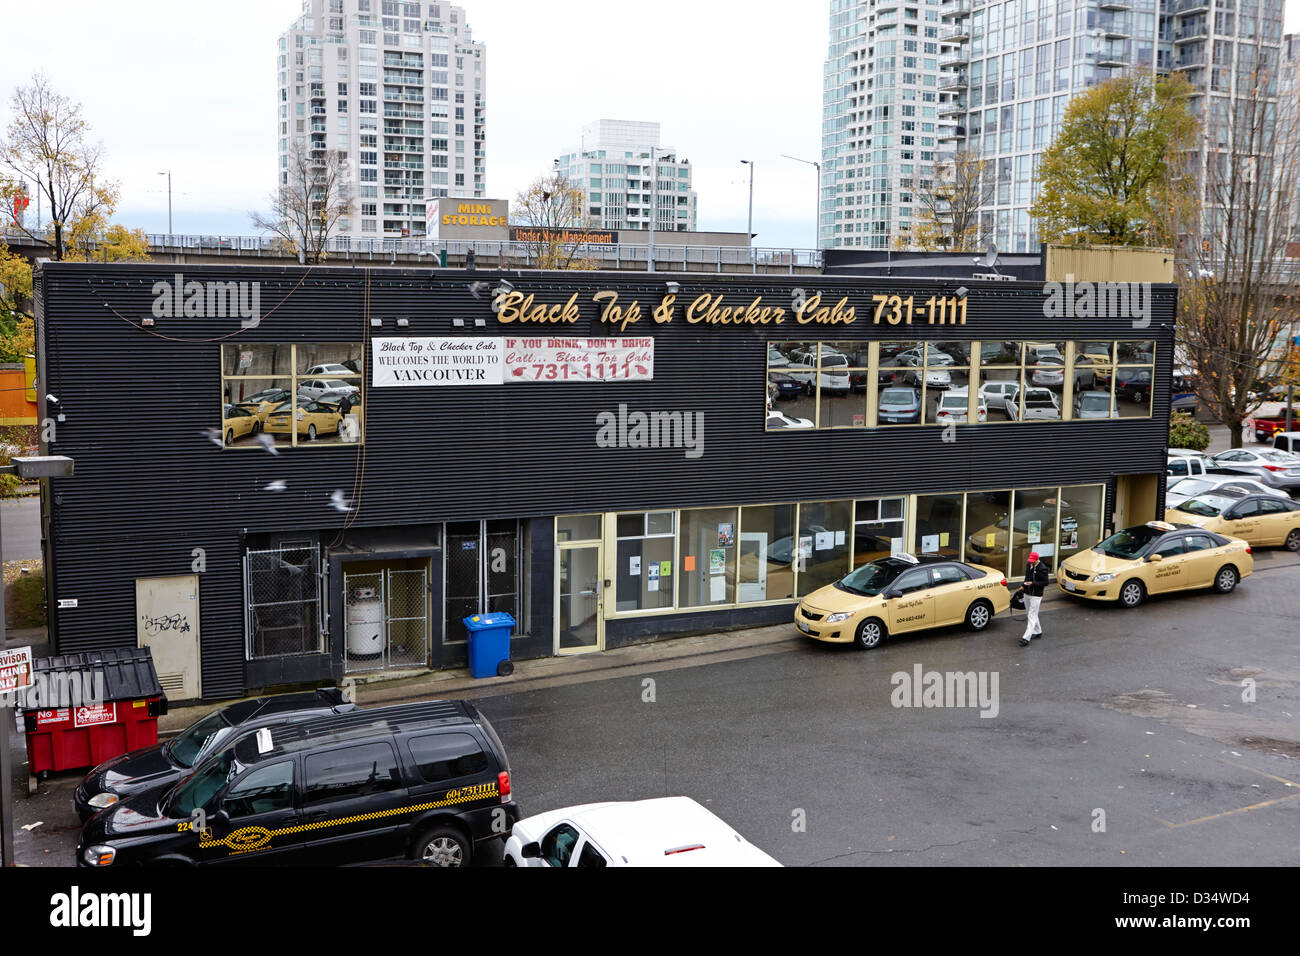 black top and checker cabs office Vancouver BC Canada - Stock Image